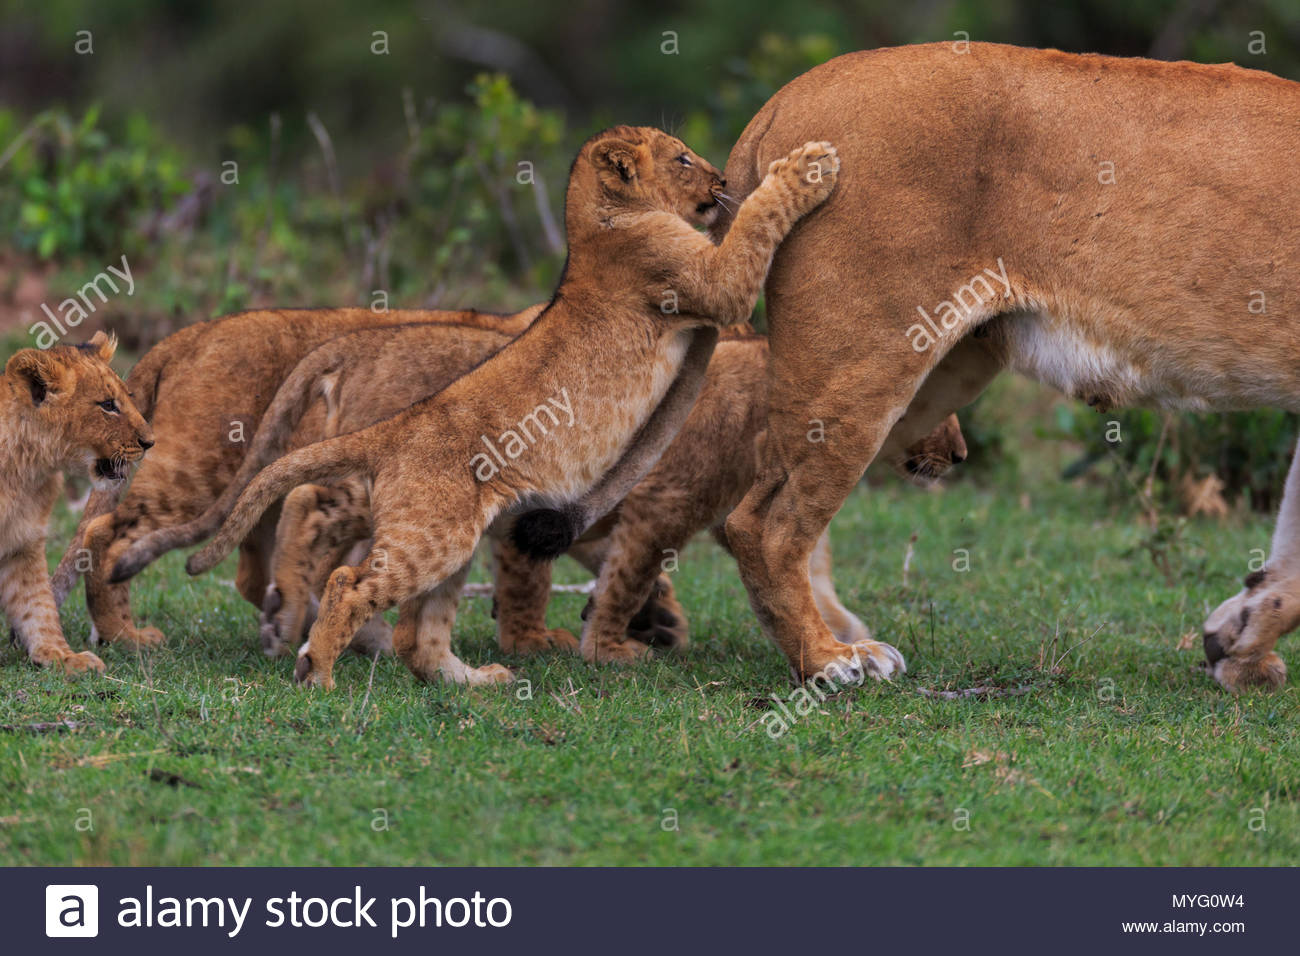 A lion exits the frame with her cubs in tow. - Stock Image